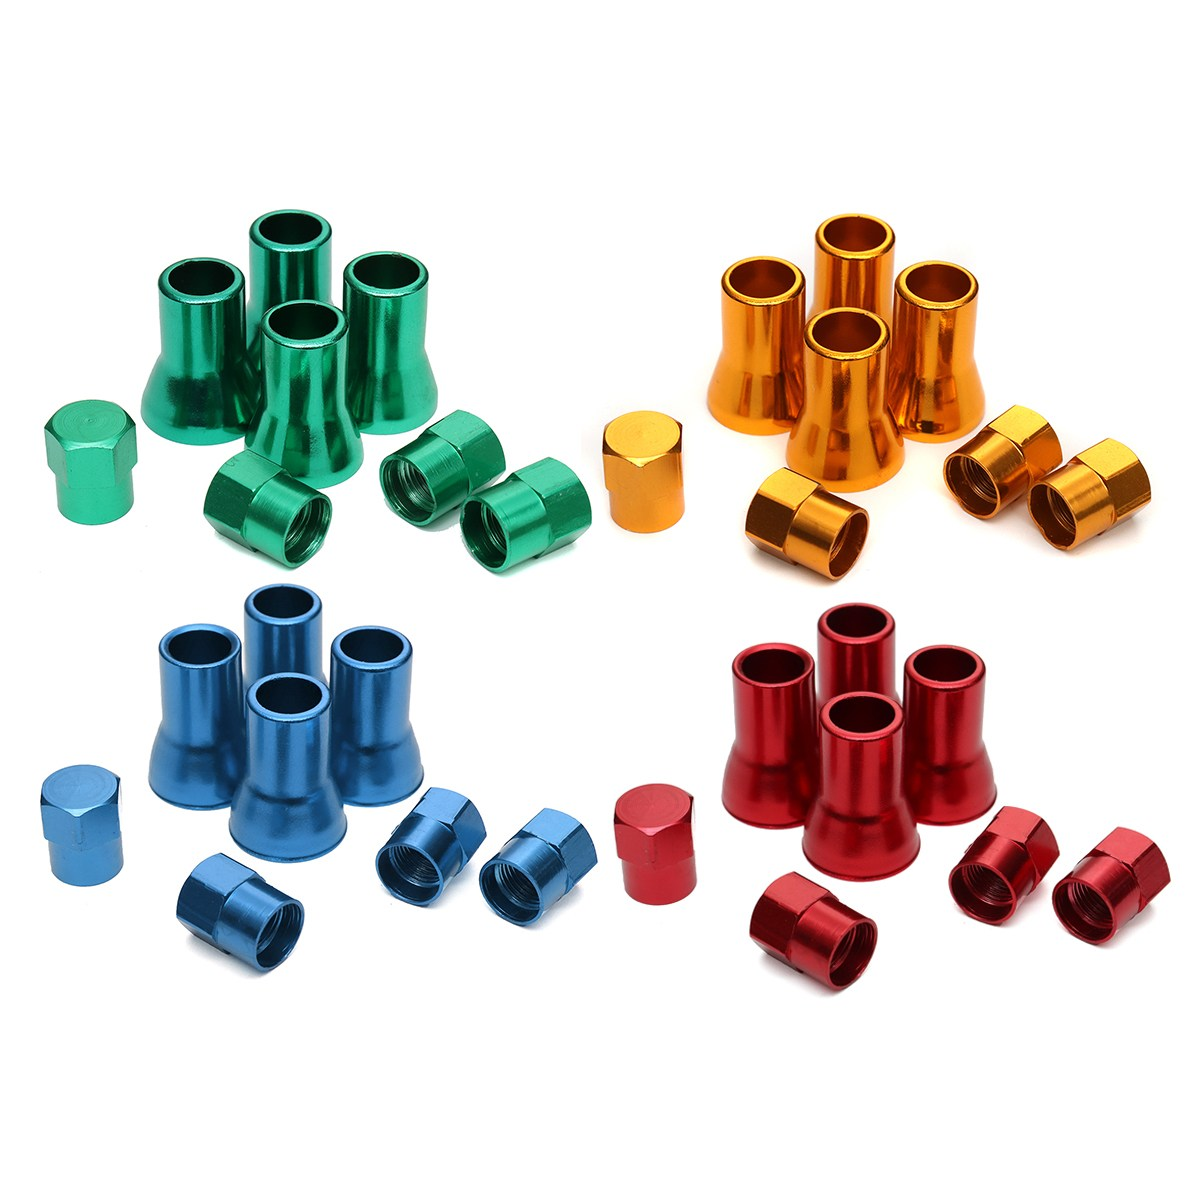 8pcs TR413 Aluminium Alloy Wheel Tyre Tire Cover Valve Stem Sleeves  With Hex Caps Red Yellow Blue Green Left Right Front Rear